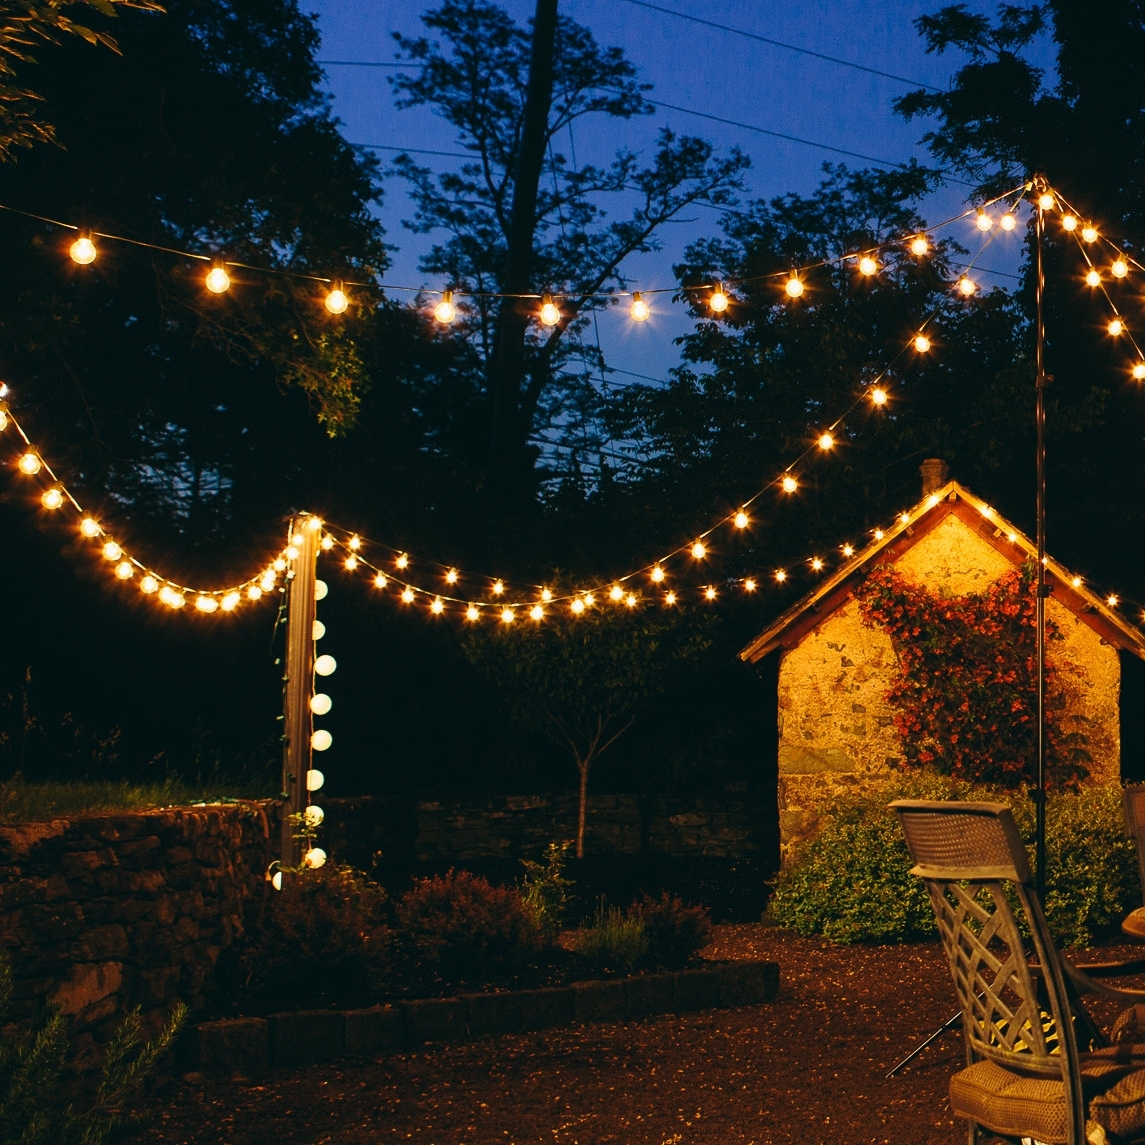 Wayfair With Regard To Newest Outdoor And Garden String Lights At Wayfair (View 18 of 20)